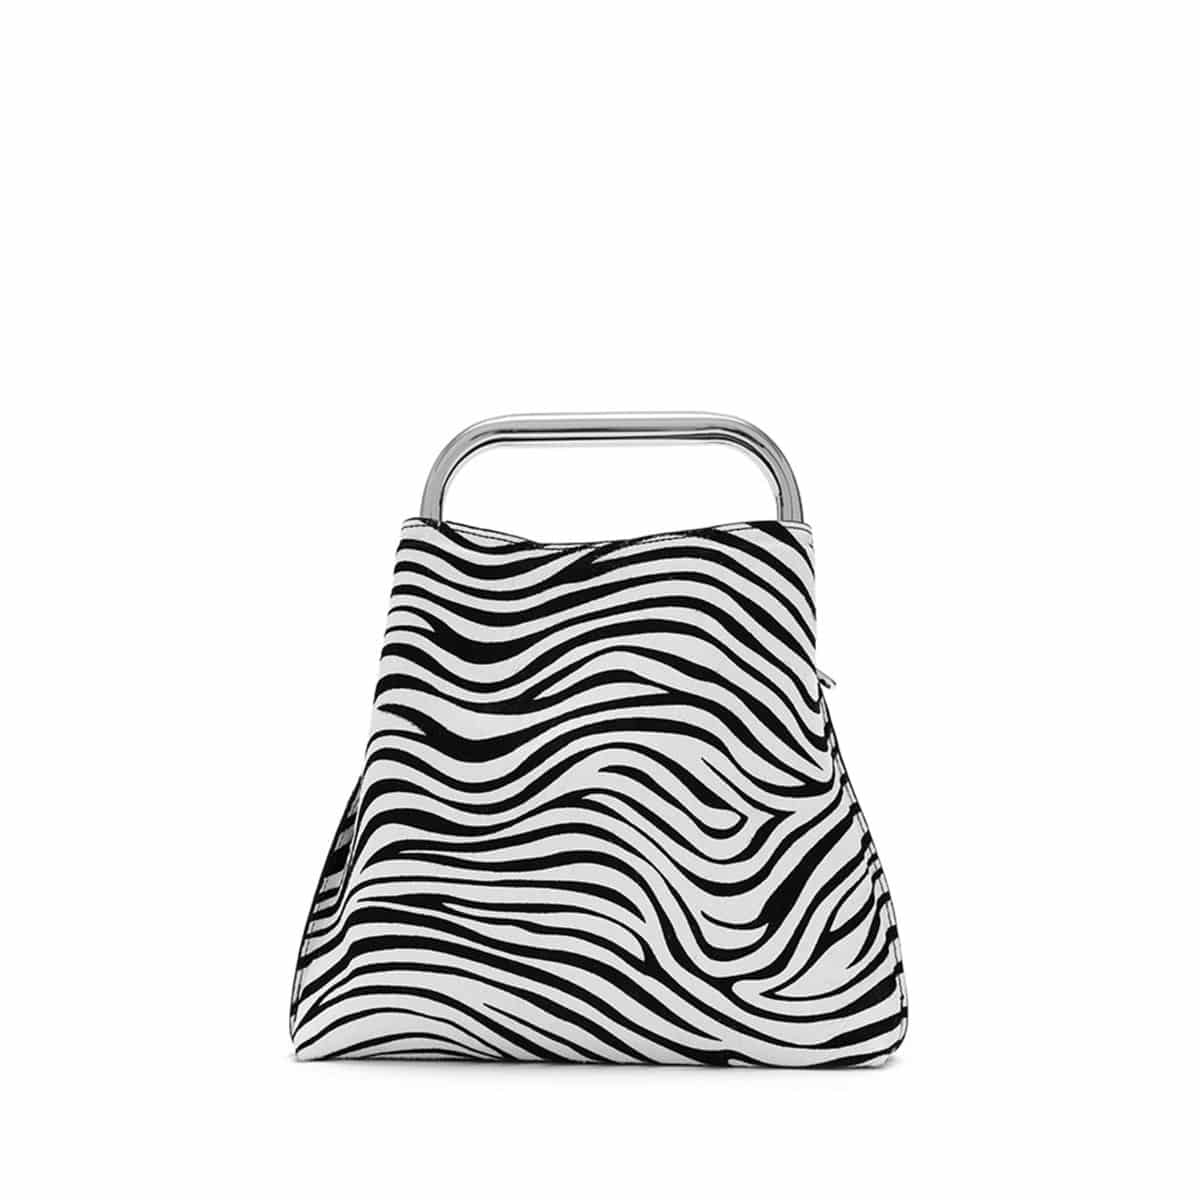 HANDLE BROT [ZEBRA]